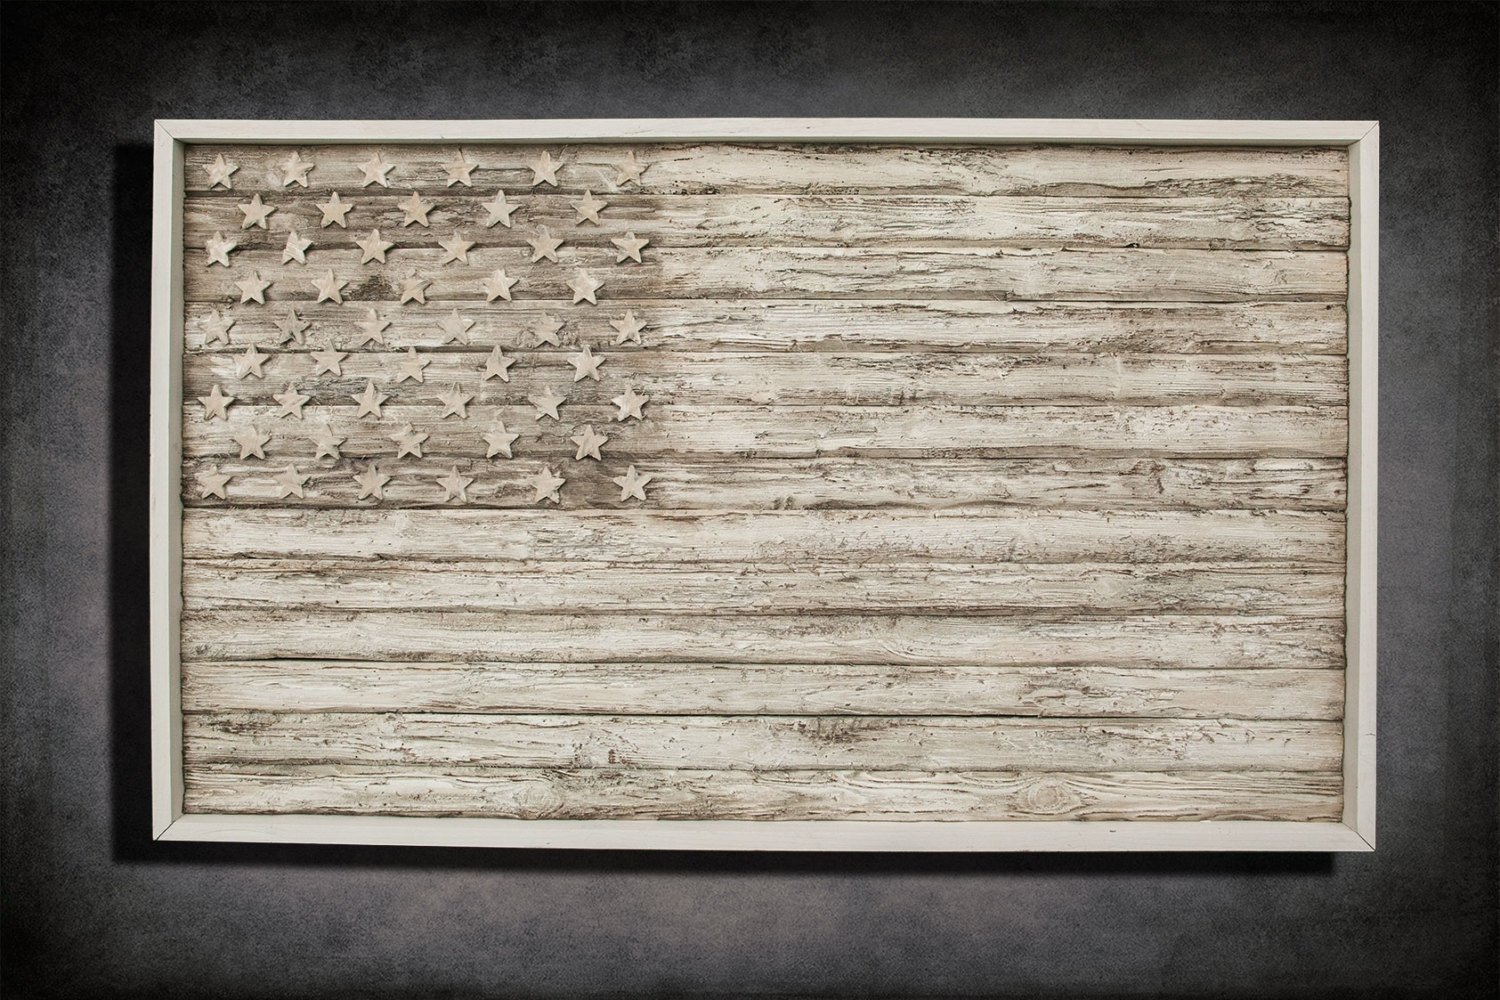 American Flag, Weathered Wood, One Of A Kind, 3D, Wooden, Vintage pertaining to Vintage American Flag Wall Art (Image 4 of 20)